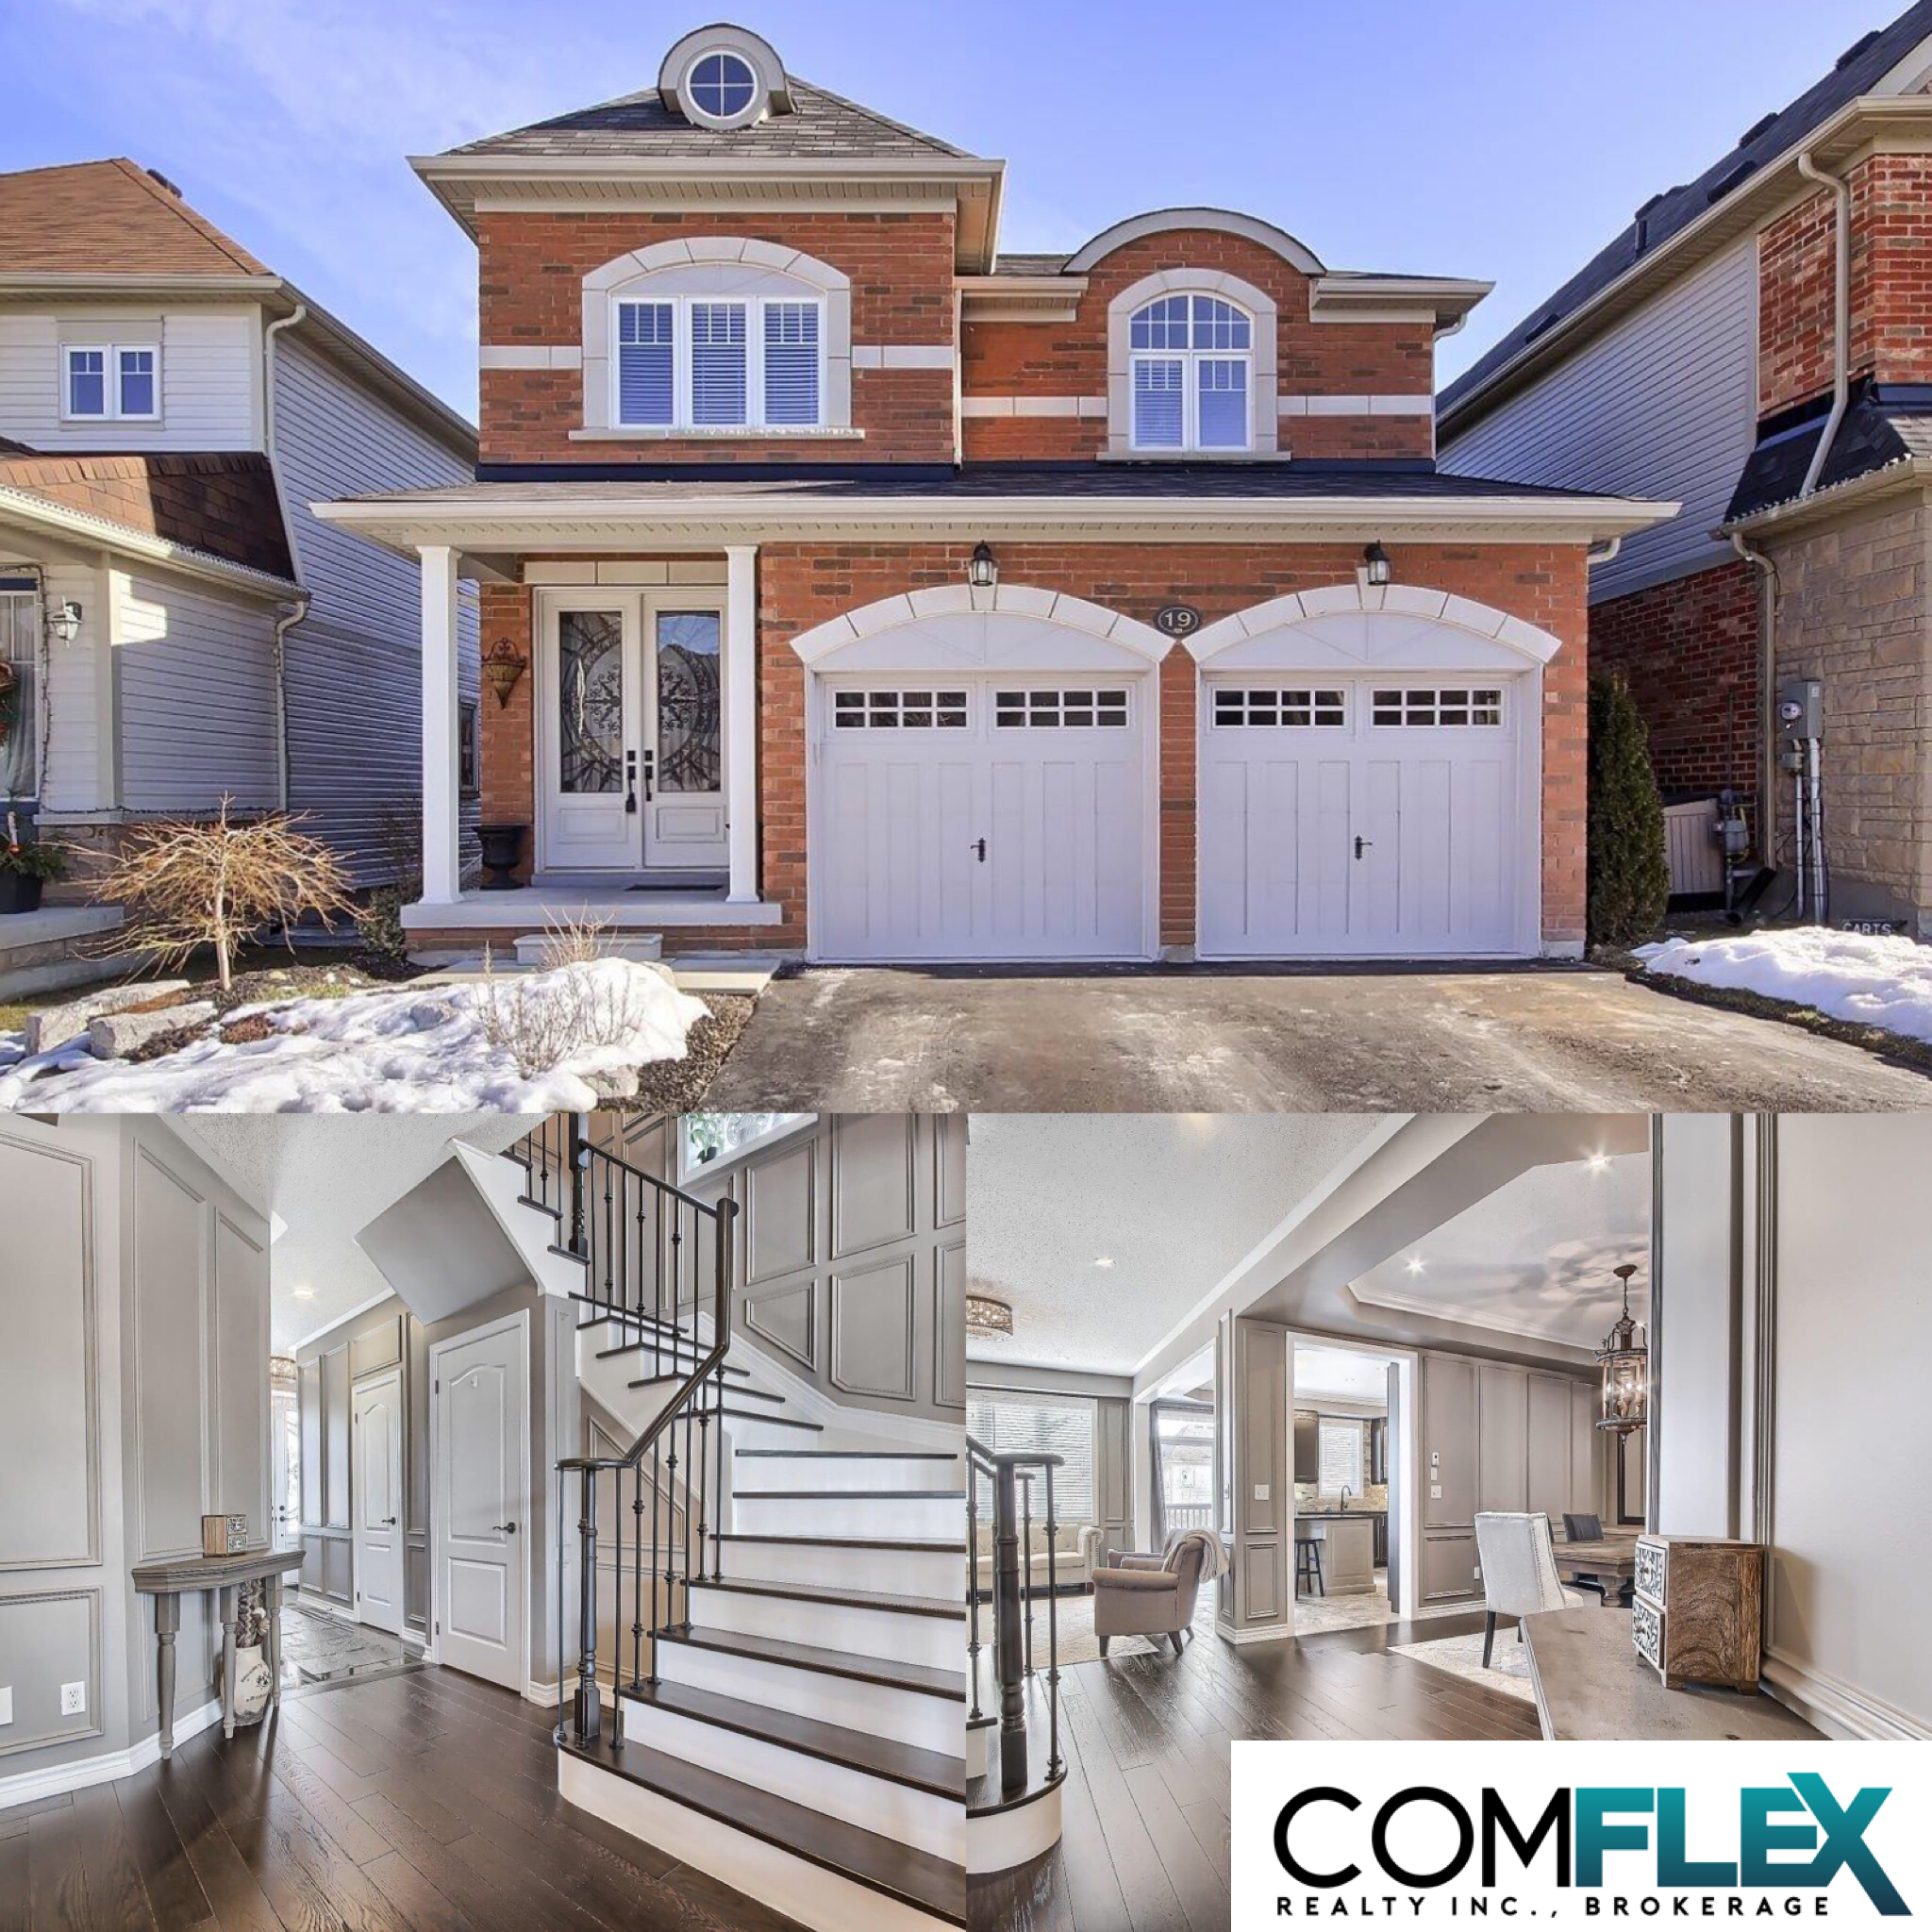 JUST LISTED! 19 BUXTON LANE, BOWMANVILLE THESE CLIENTS ARE READY TO SAVE MORE!